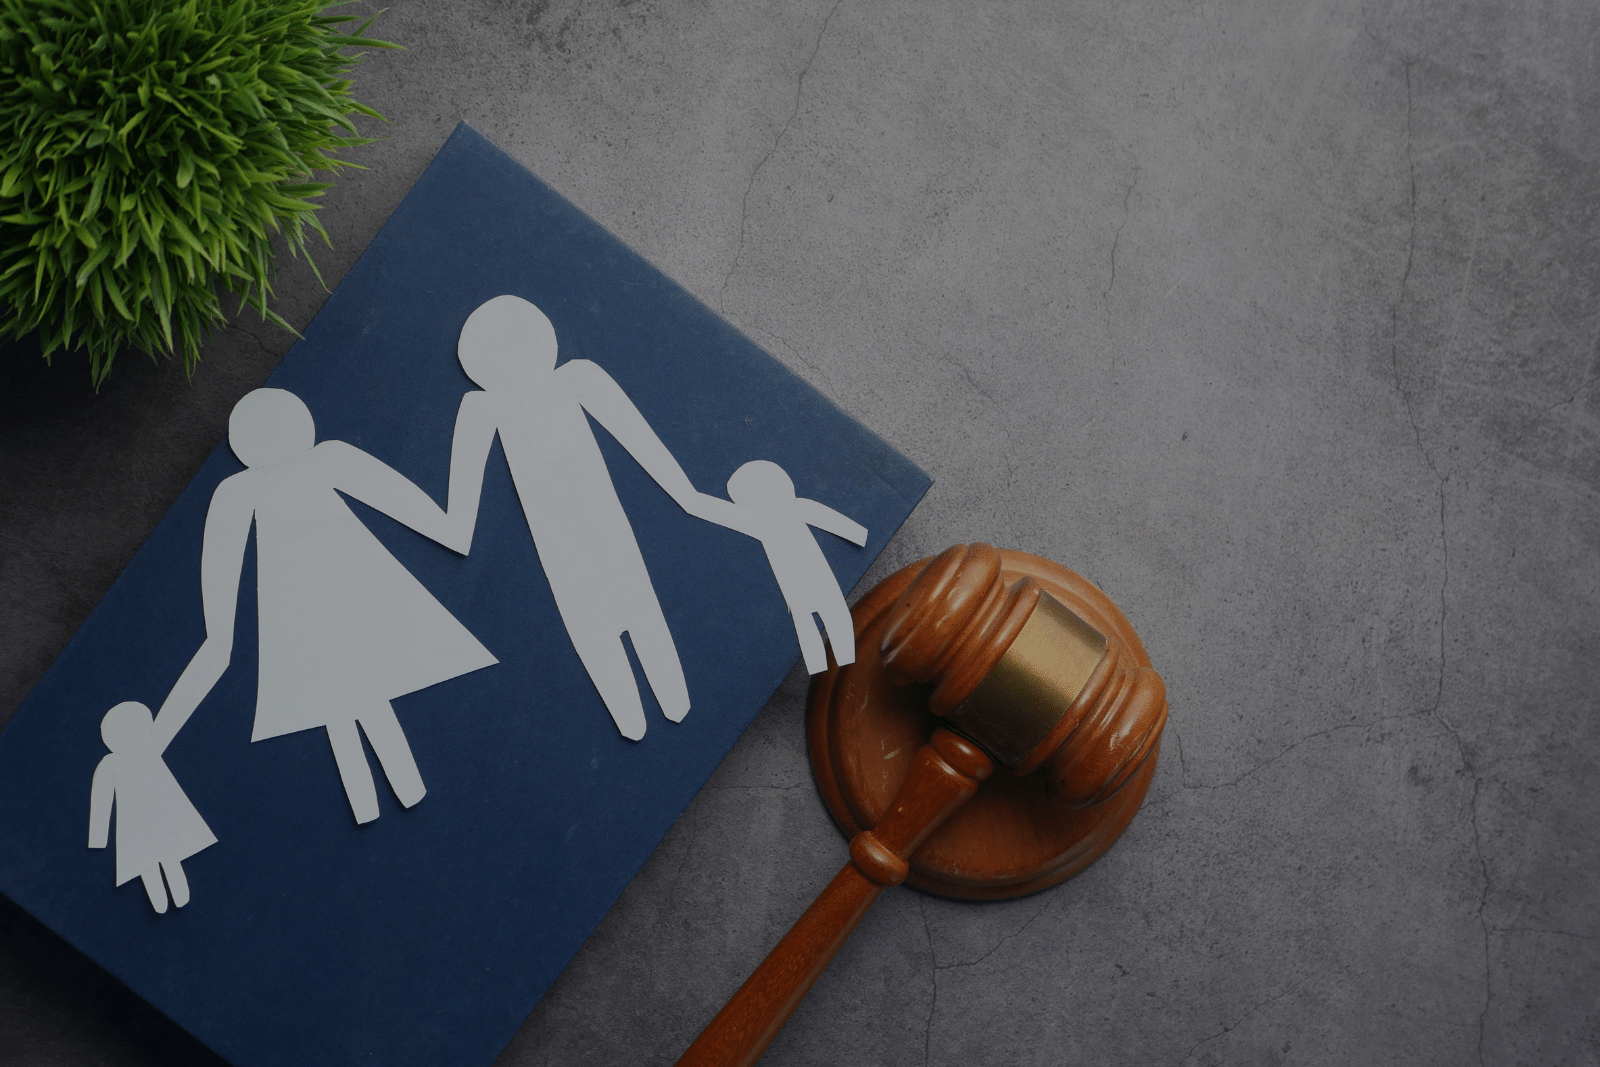 family court, Federal Circuit and Family Court of Australia, court merger, sydney family lawyers, ivy law group, family law, family court changes, september 1